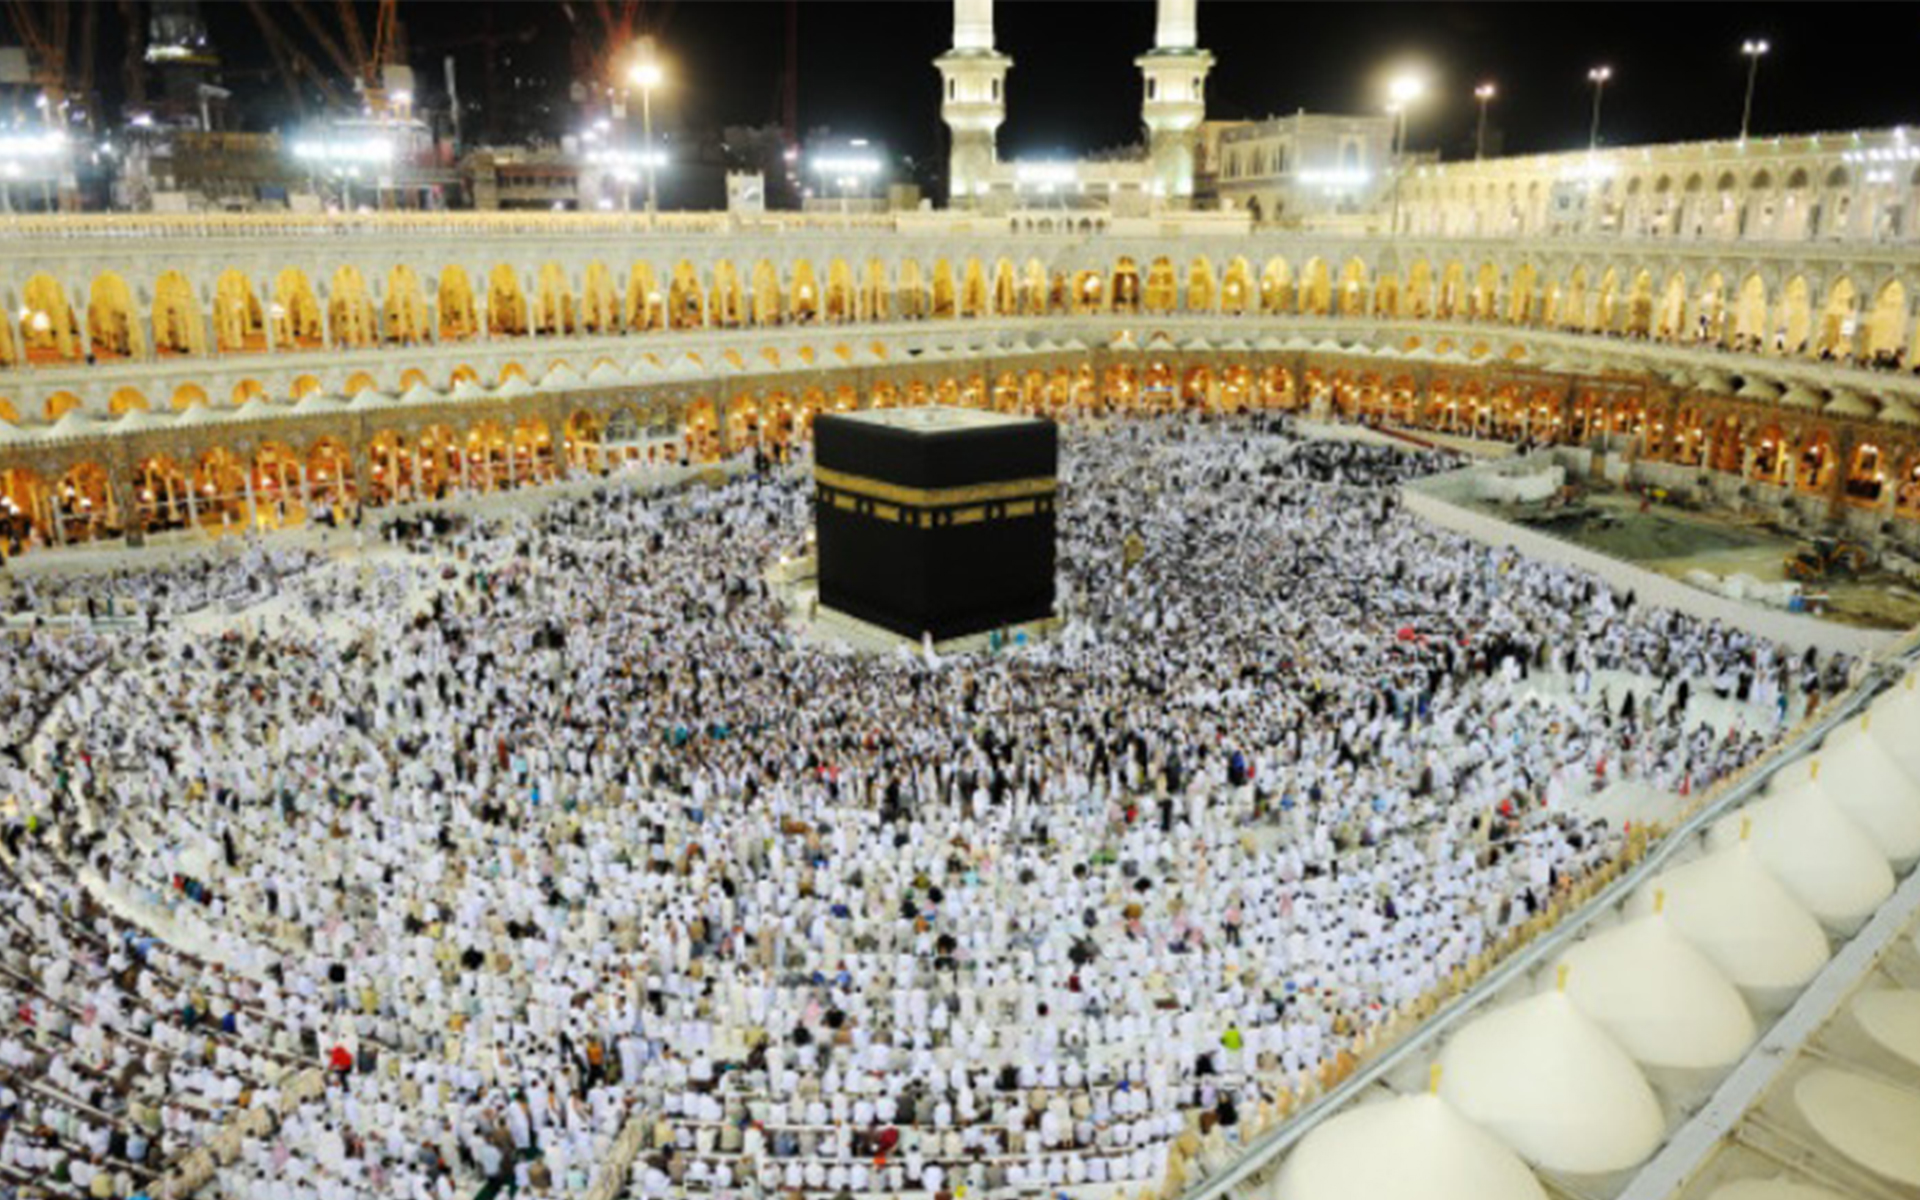 Where to get Hajj and Umrah Vaccination for 2019 in Edgware road and surrounding areas